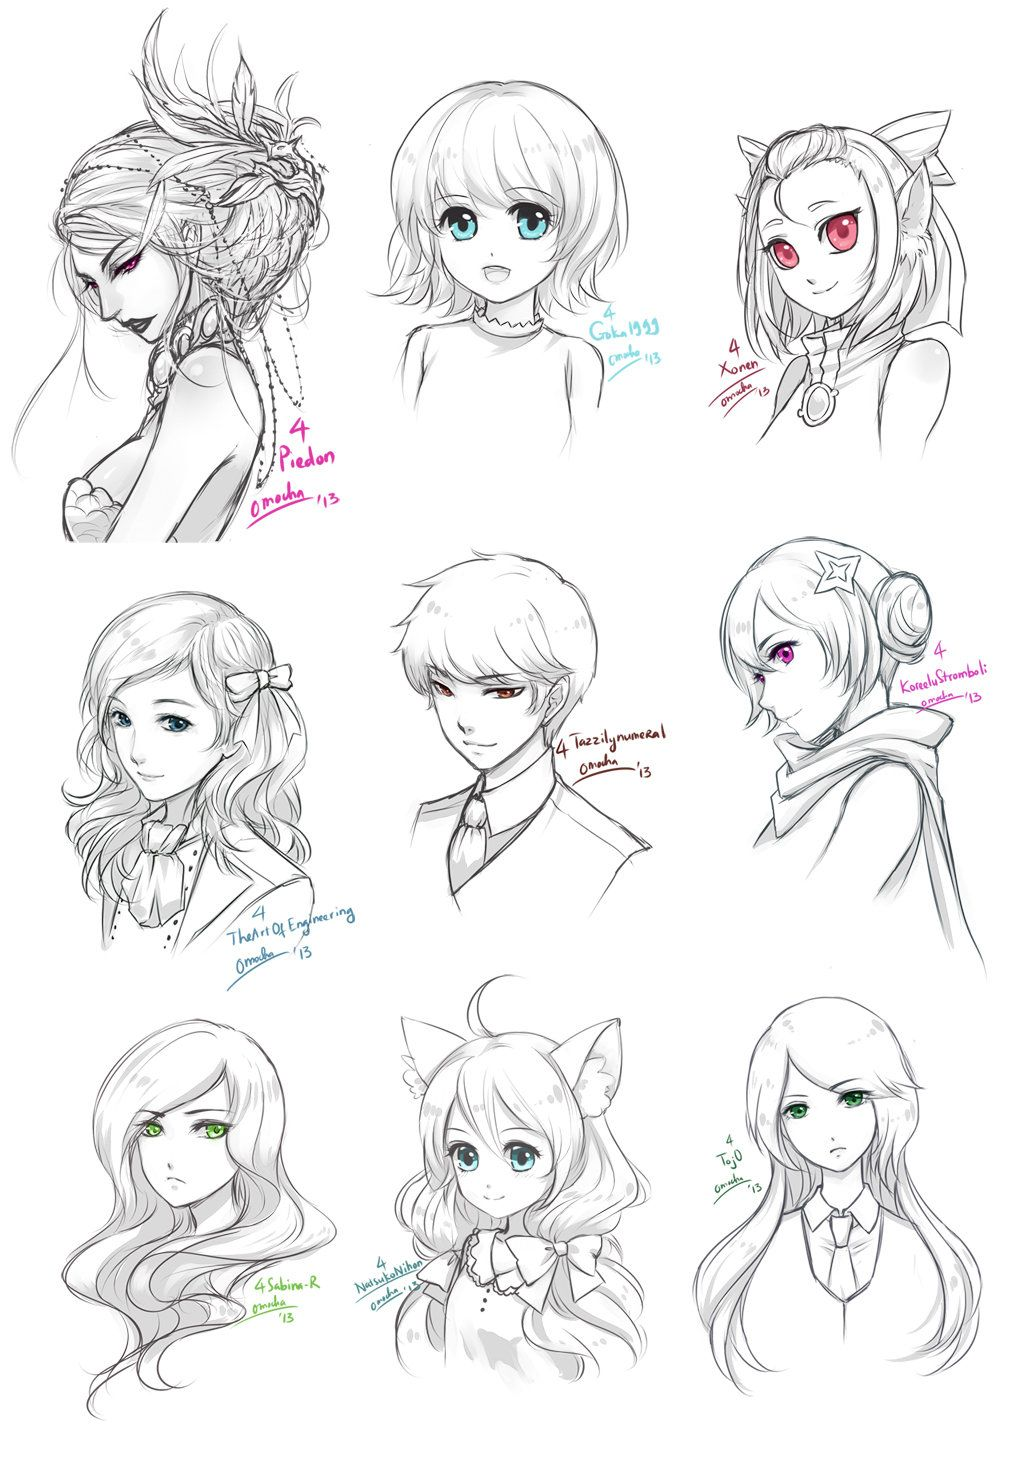 Free Sketches April072013 By Zenithomocha On Deviantart Manga Drawing Anime Sketch Sketches